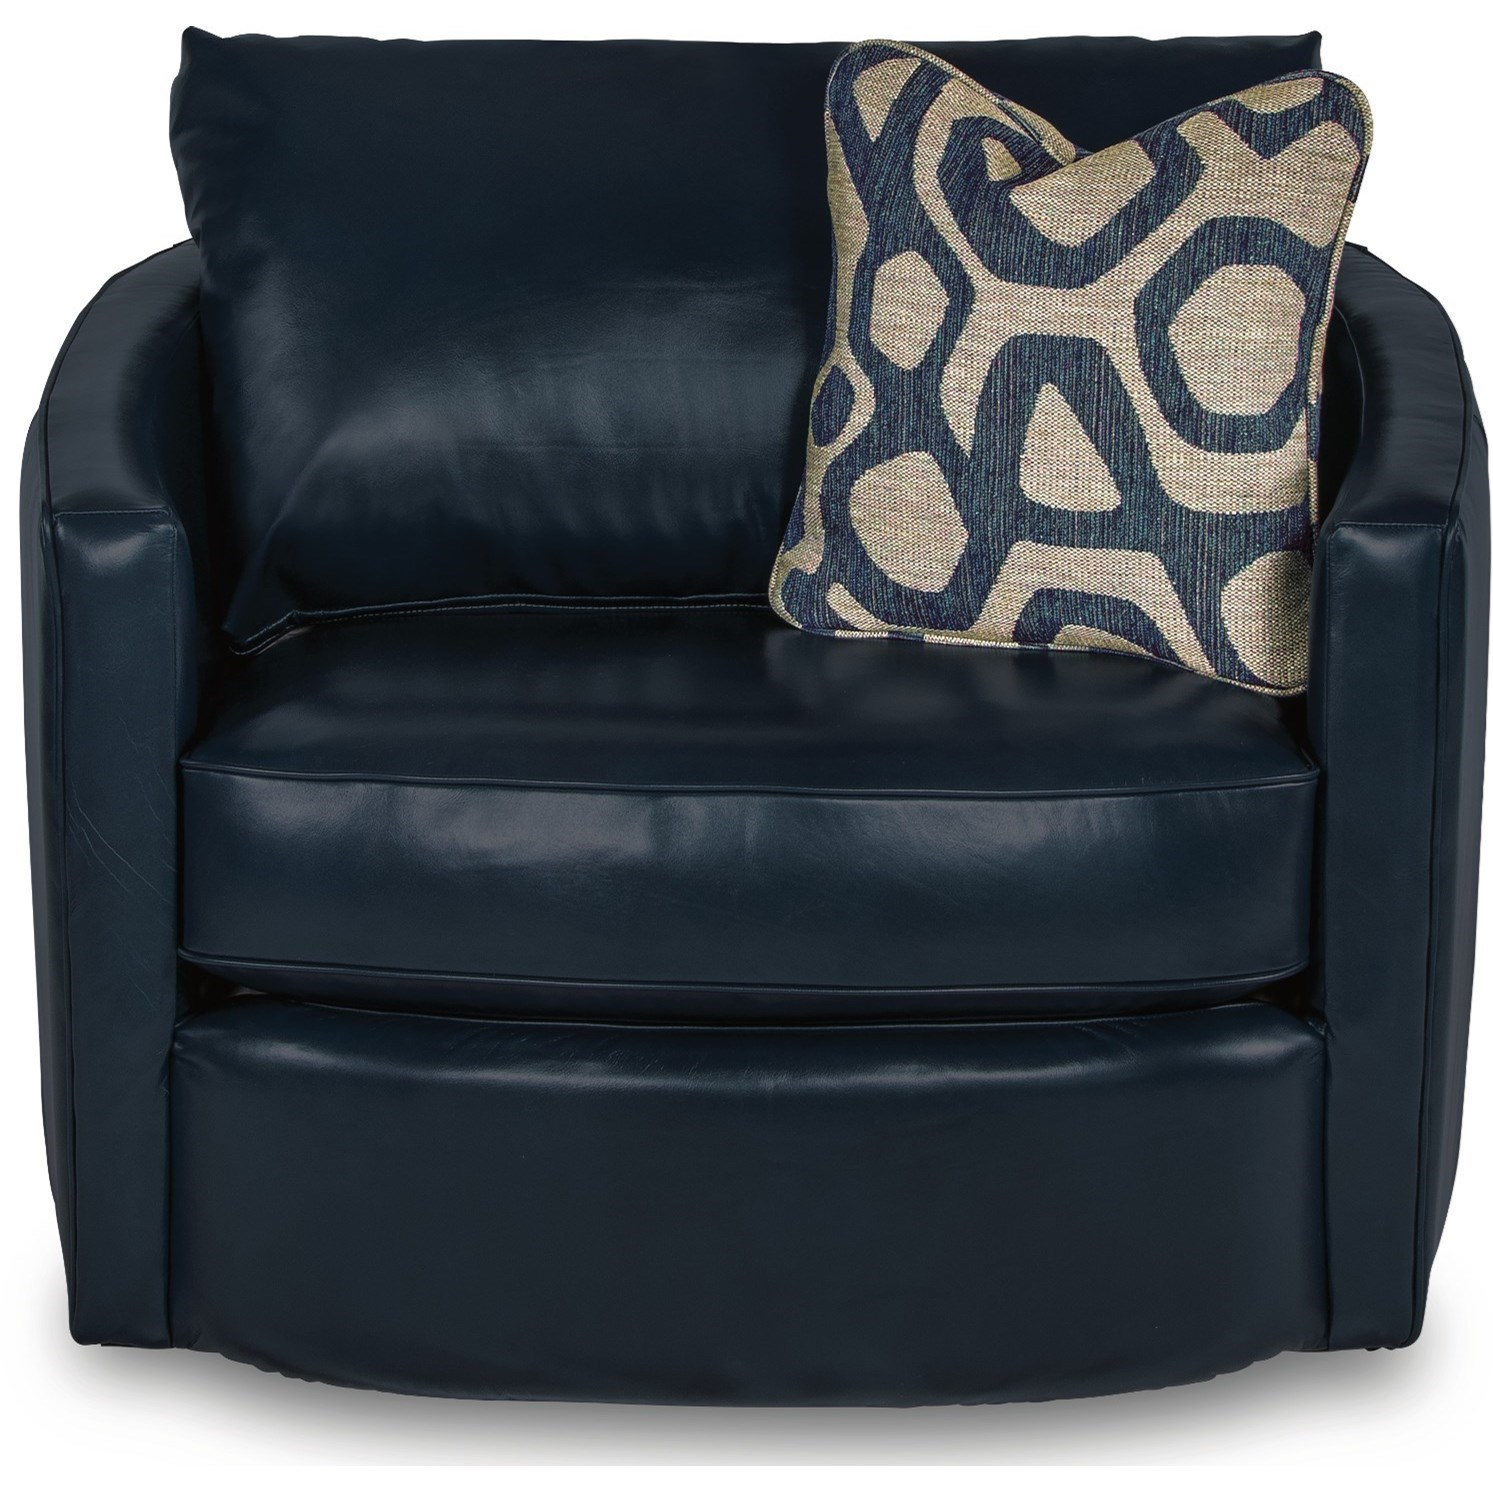 Chairs Clover Premier Swivel Occasional Chair by La-Z-Boy at Jordan's Home Furnishings